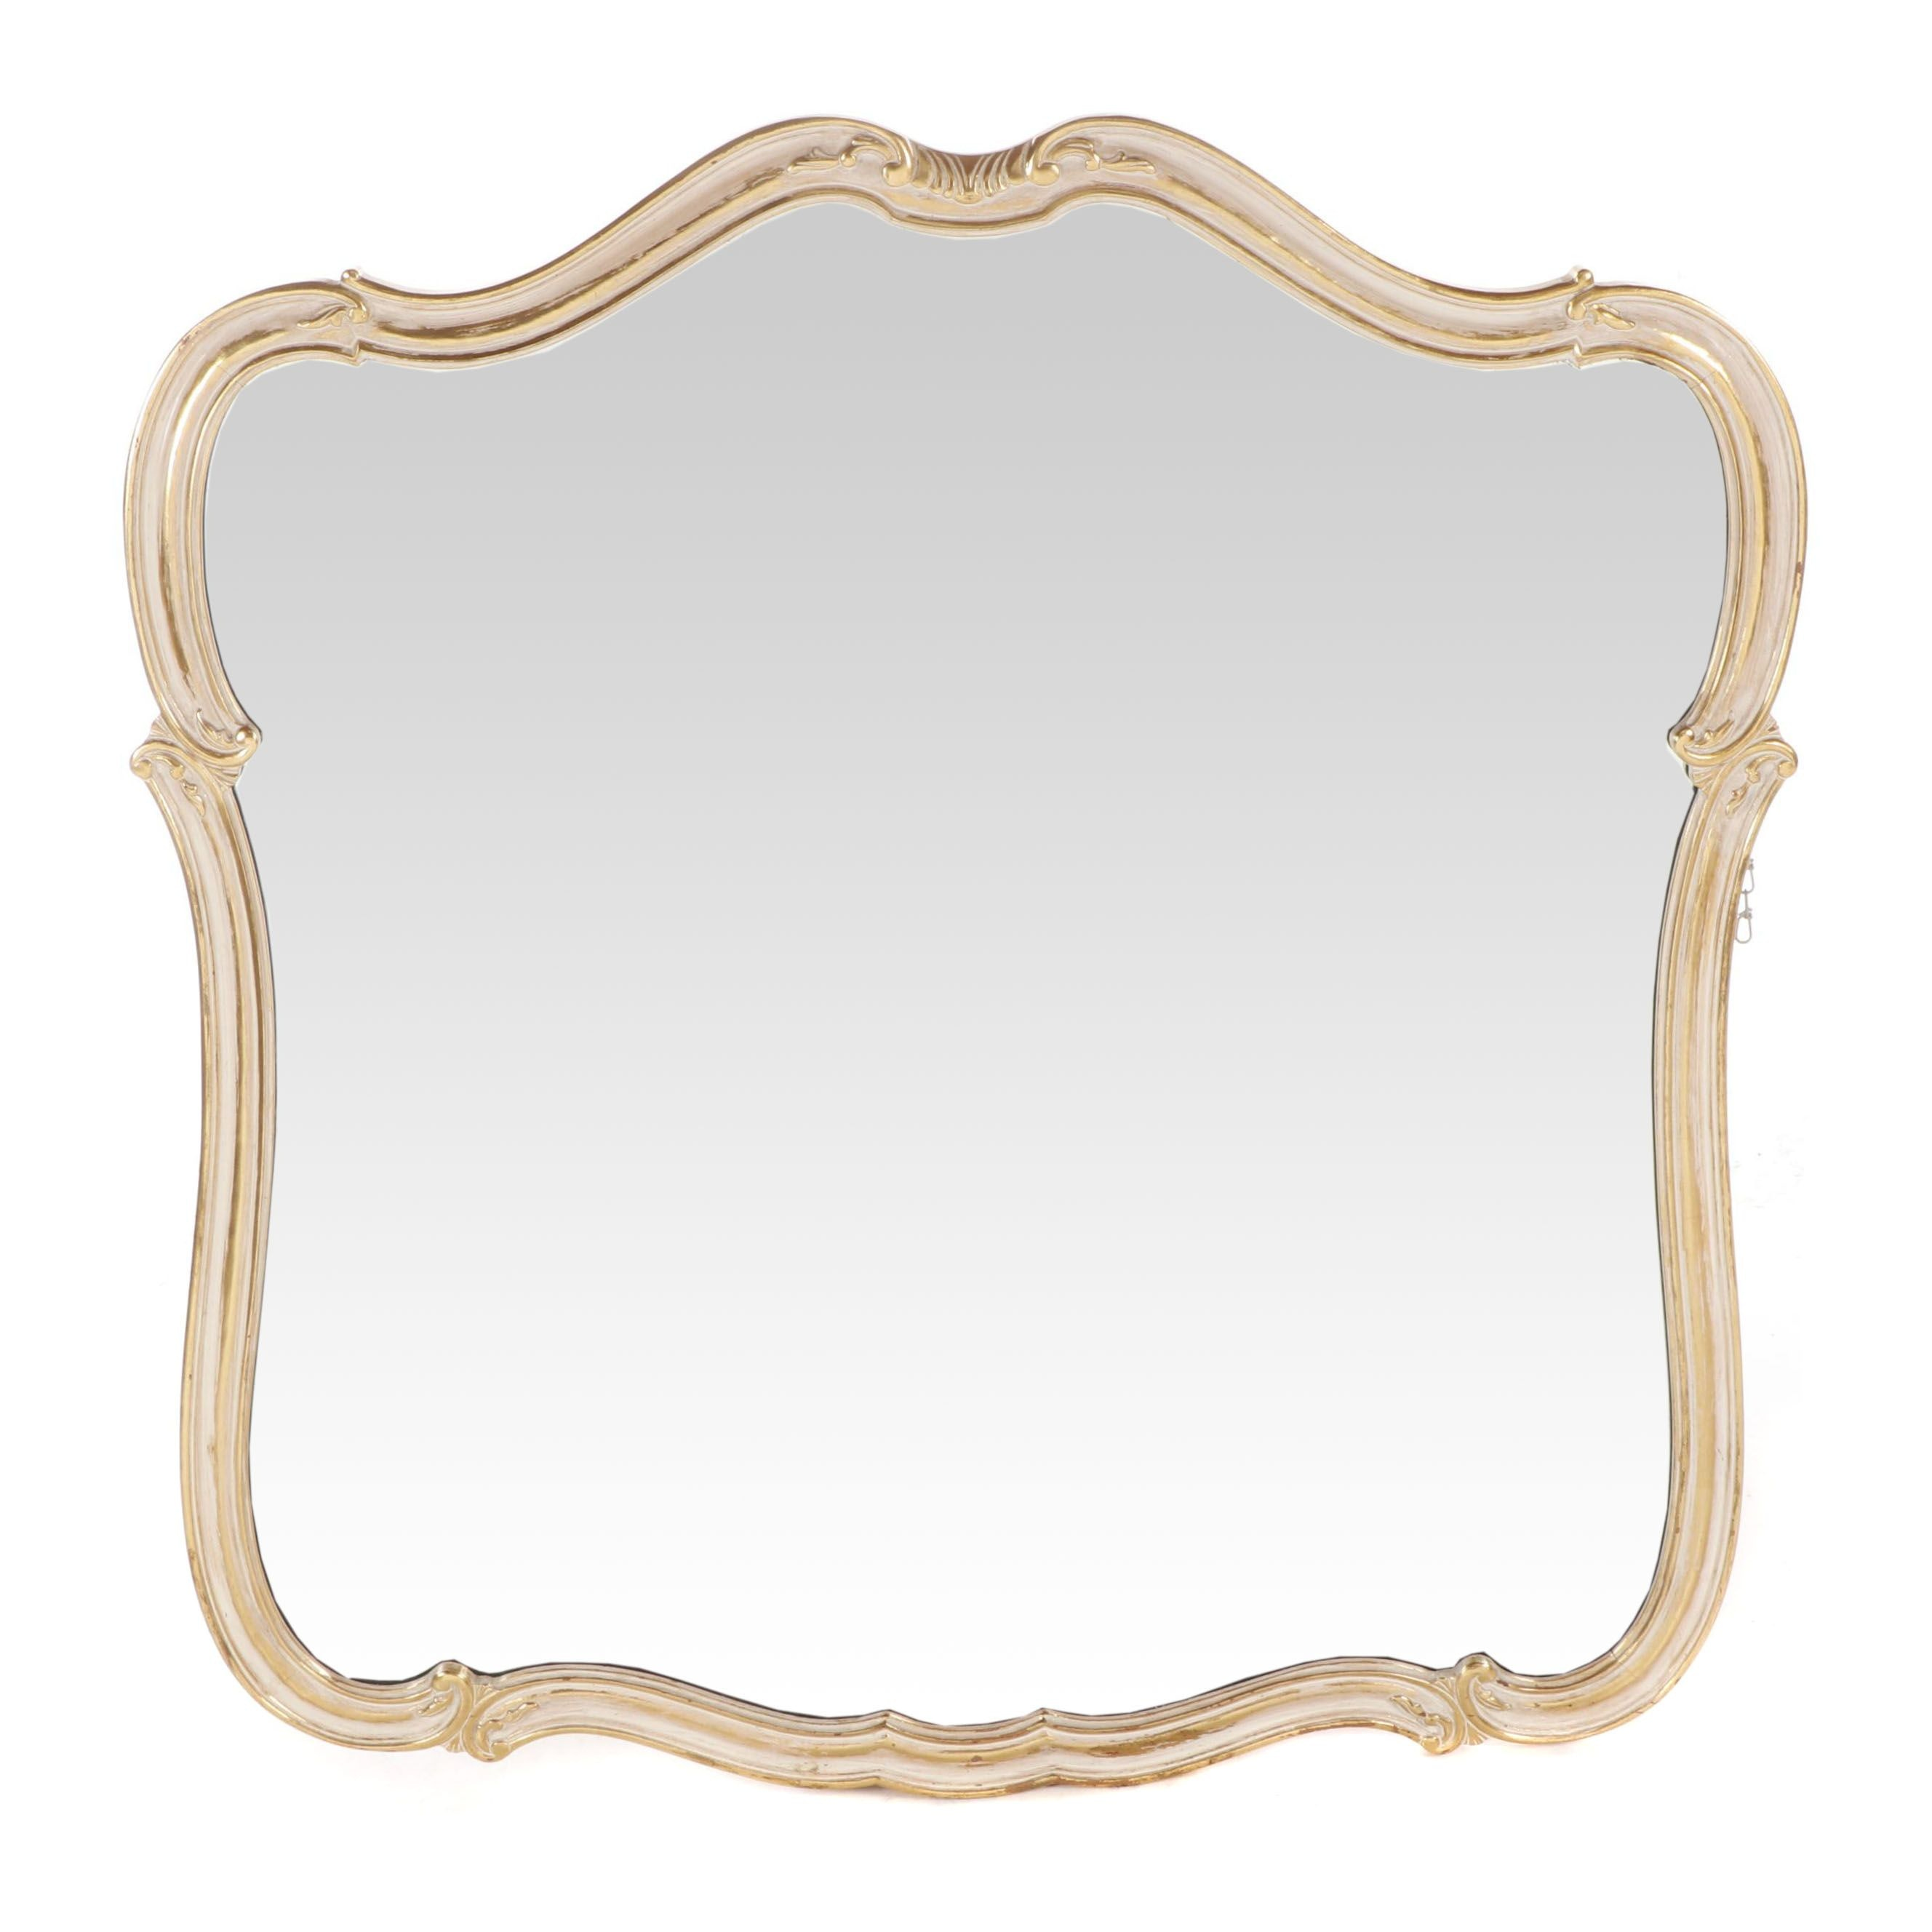 Rococo Style Wall Hanging Mirror with Painted Gold Finish Frame